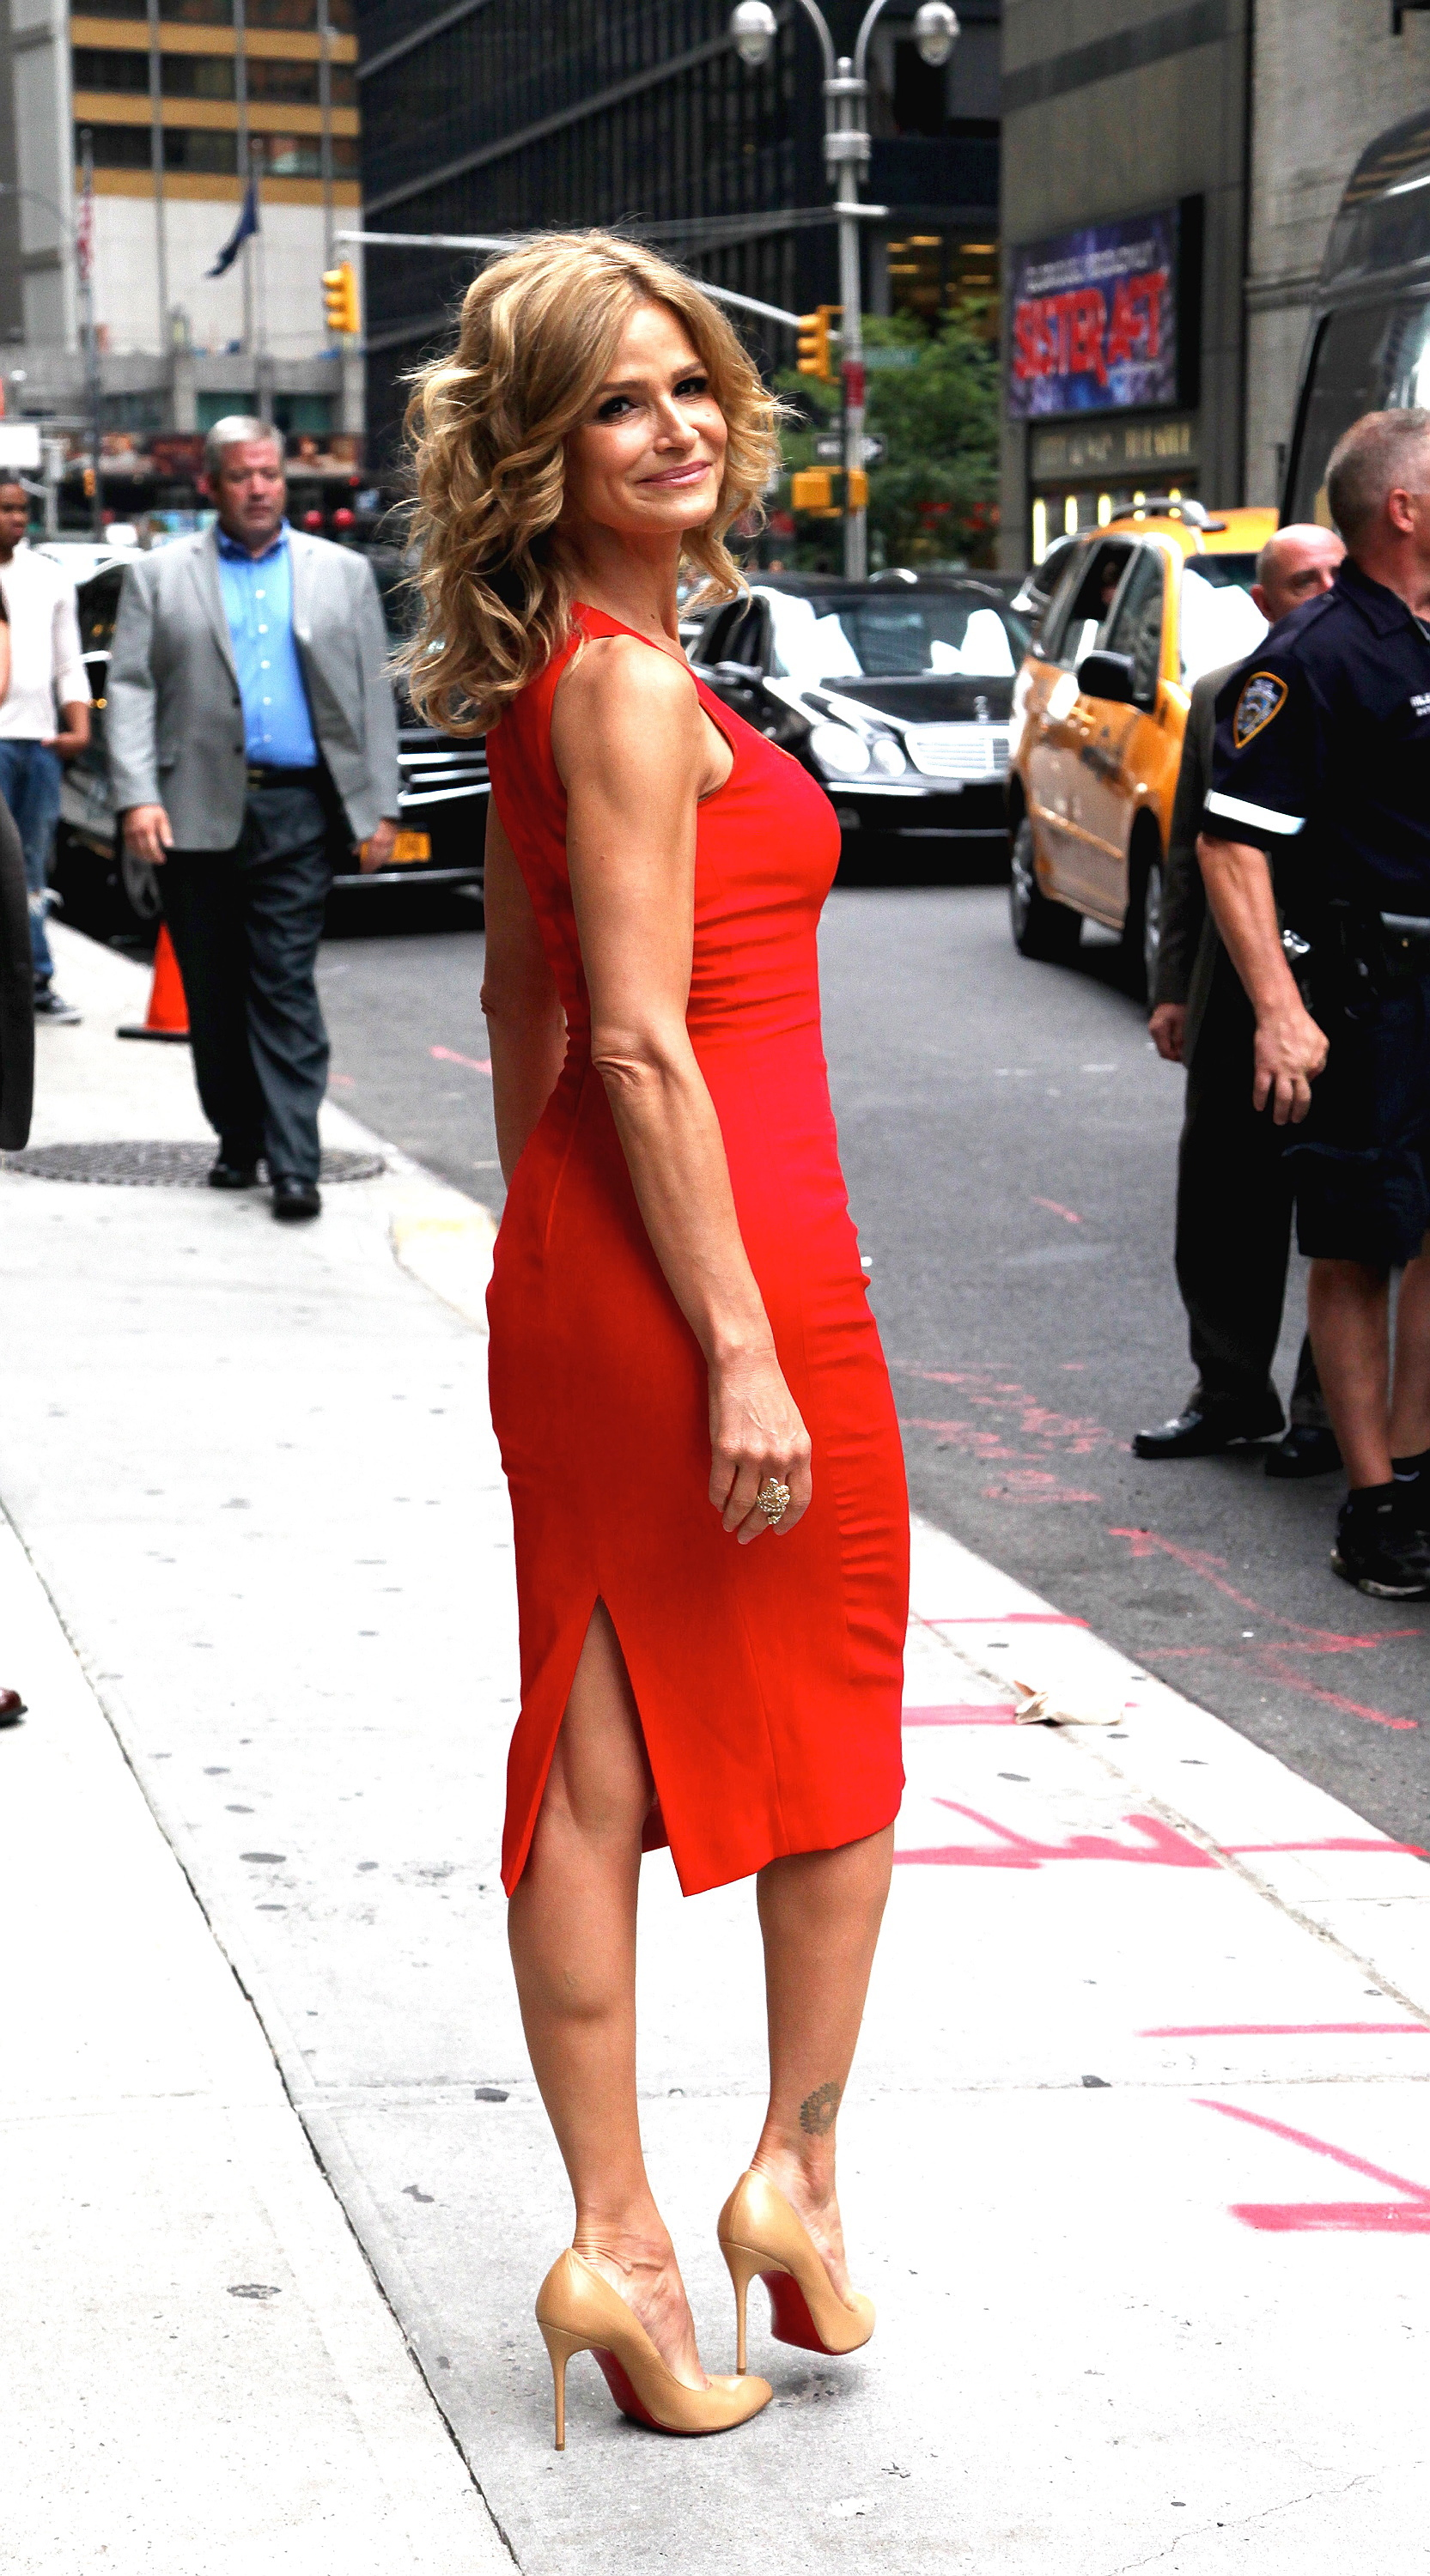 Kyra Sedgwick 'The Late Show with David Letterman' at the Ed Sullivan Theater - Arrivals  Featuring: Kyra Sedgwick Where: New York City, United States When: 18 Jul 2012 Credit: WENN